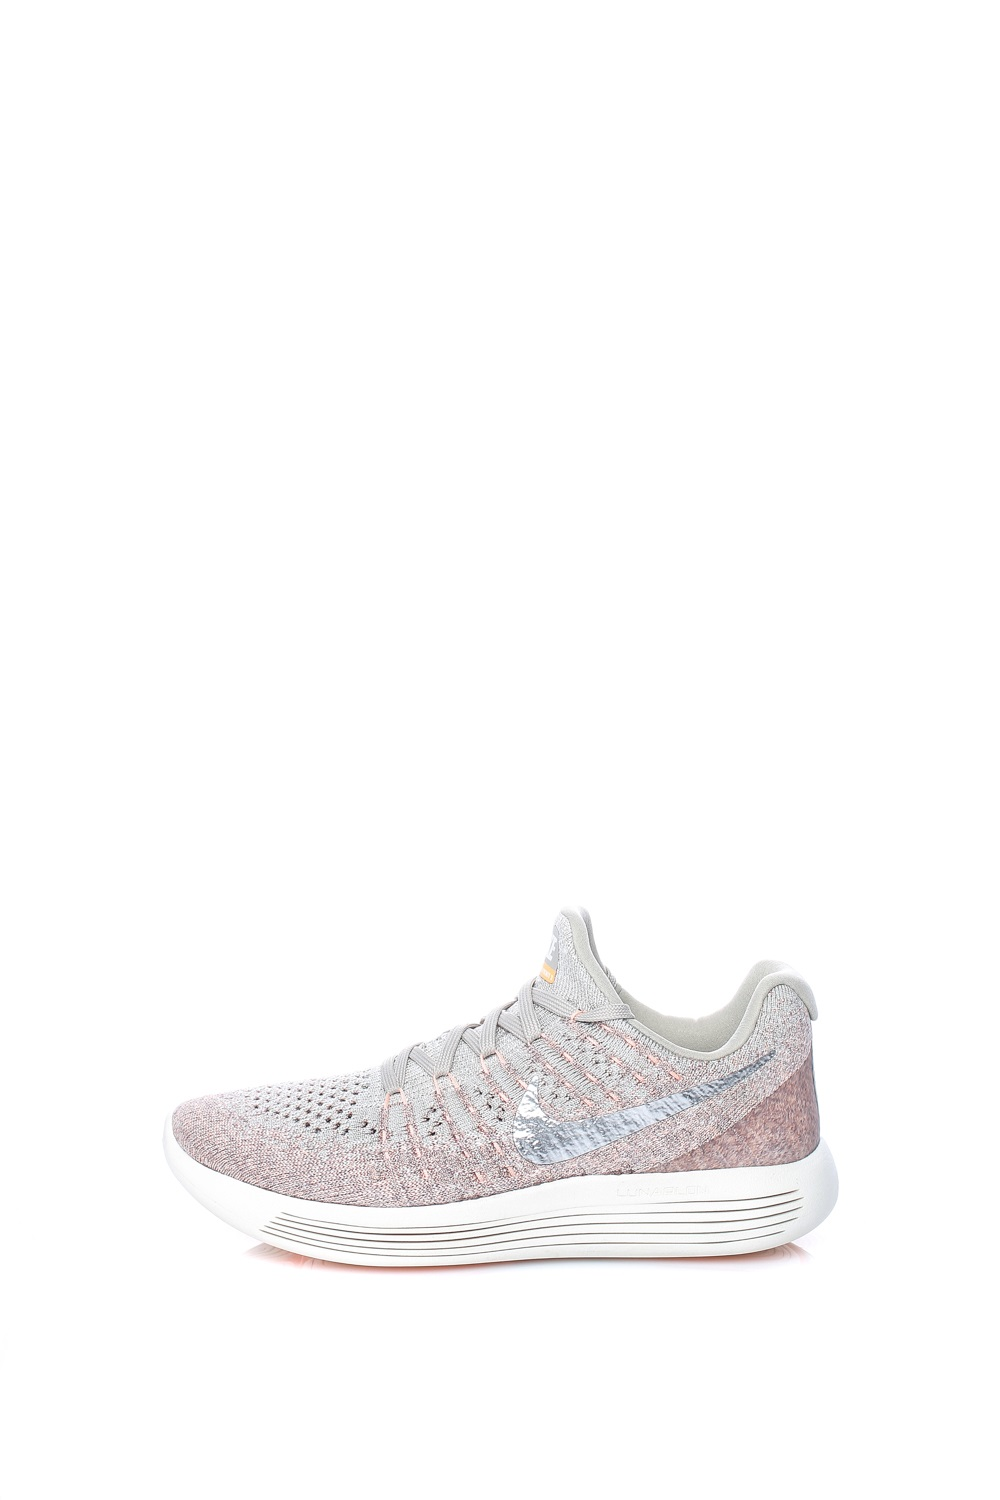 a3e9c736f08 -53% Factory Outlet NIKE – Γυναικεία Nike LunarEpic Low Flyknit 2 Running  Shoe